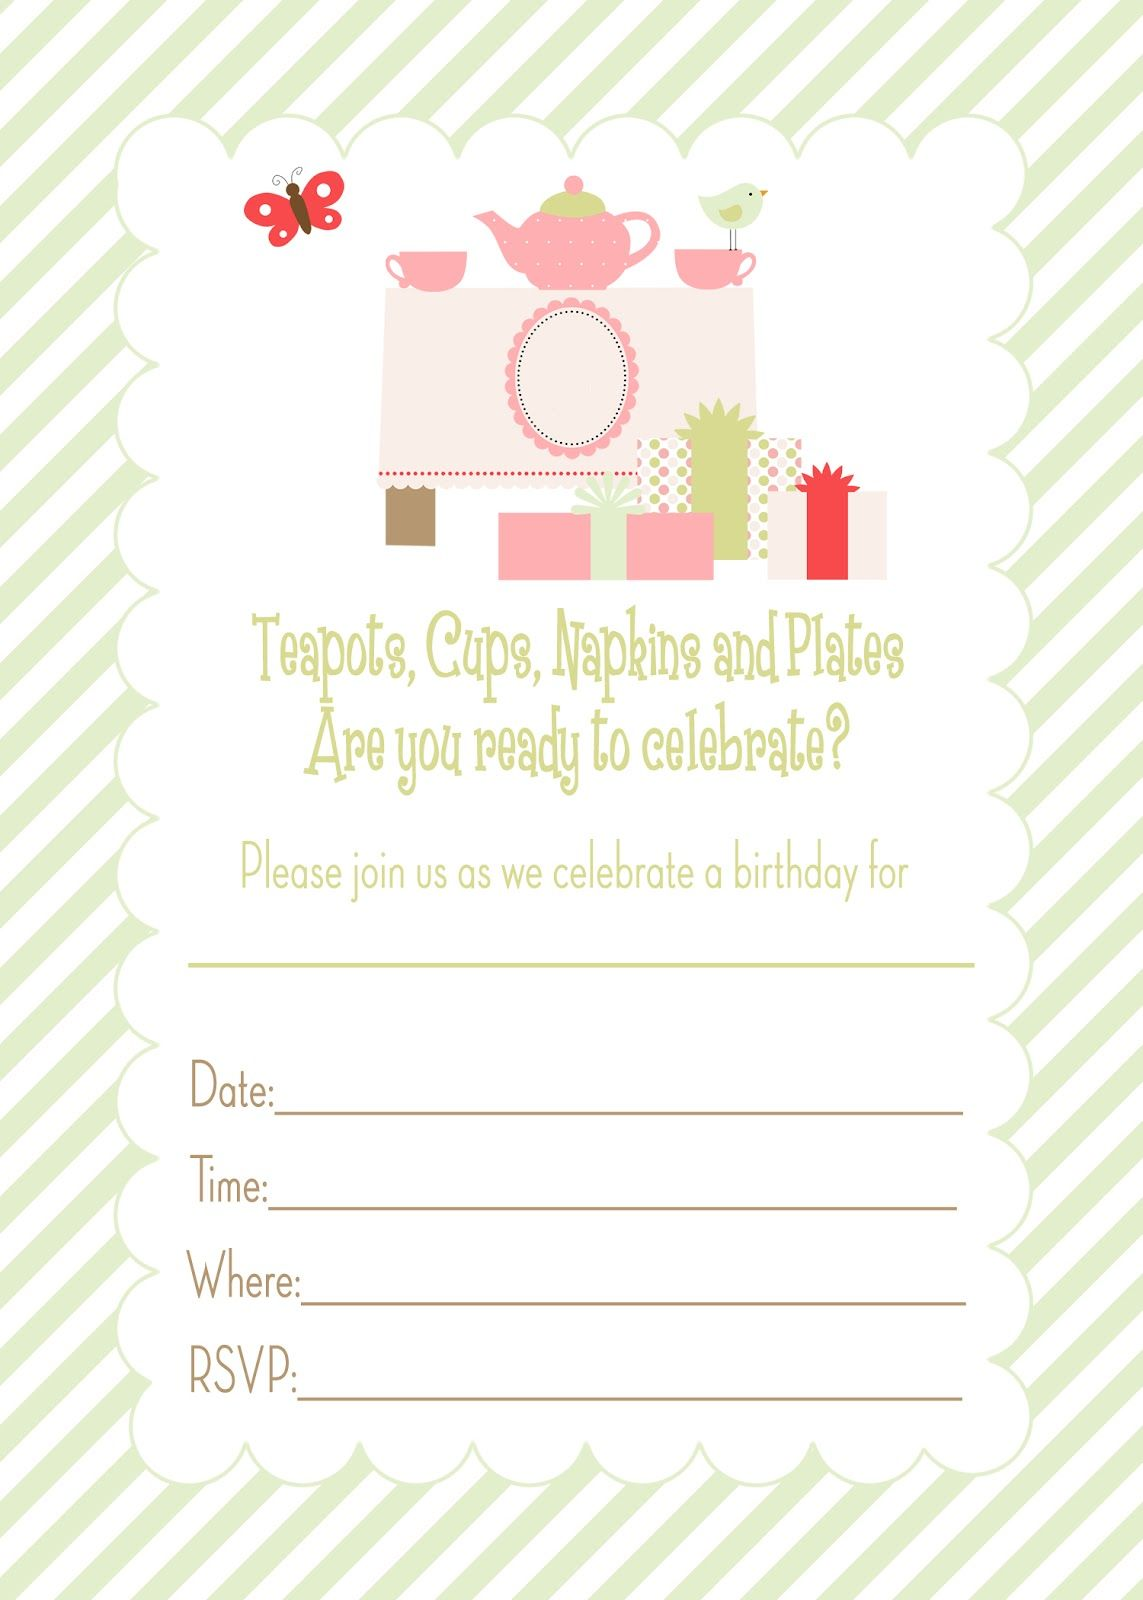 Free Printable Tea Party Birthday Invitation Go To Likegossip Get More Gossip News